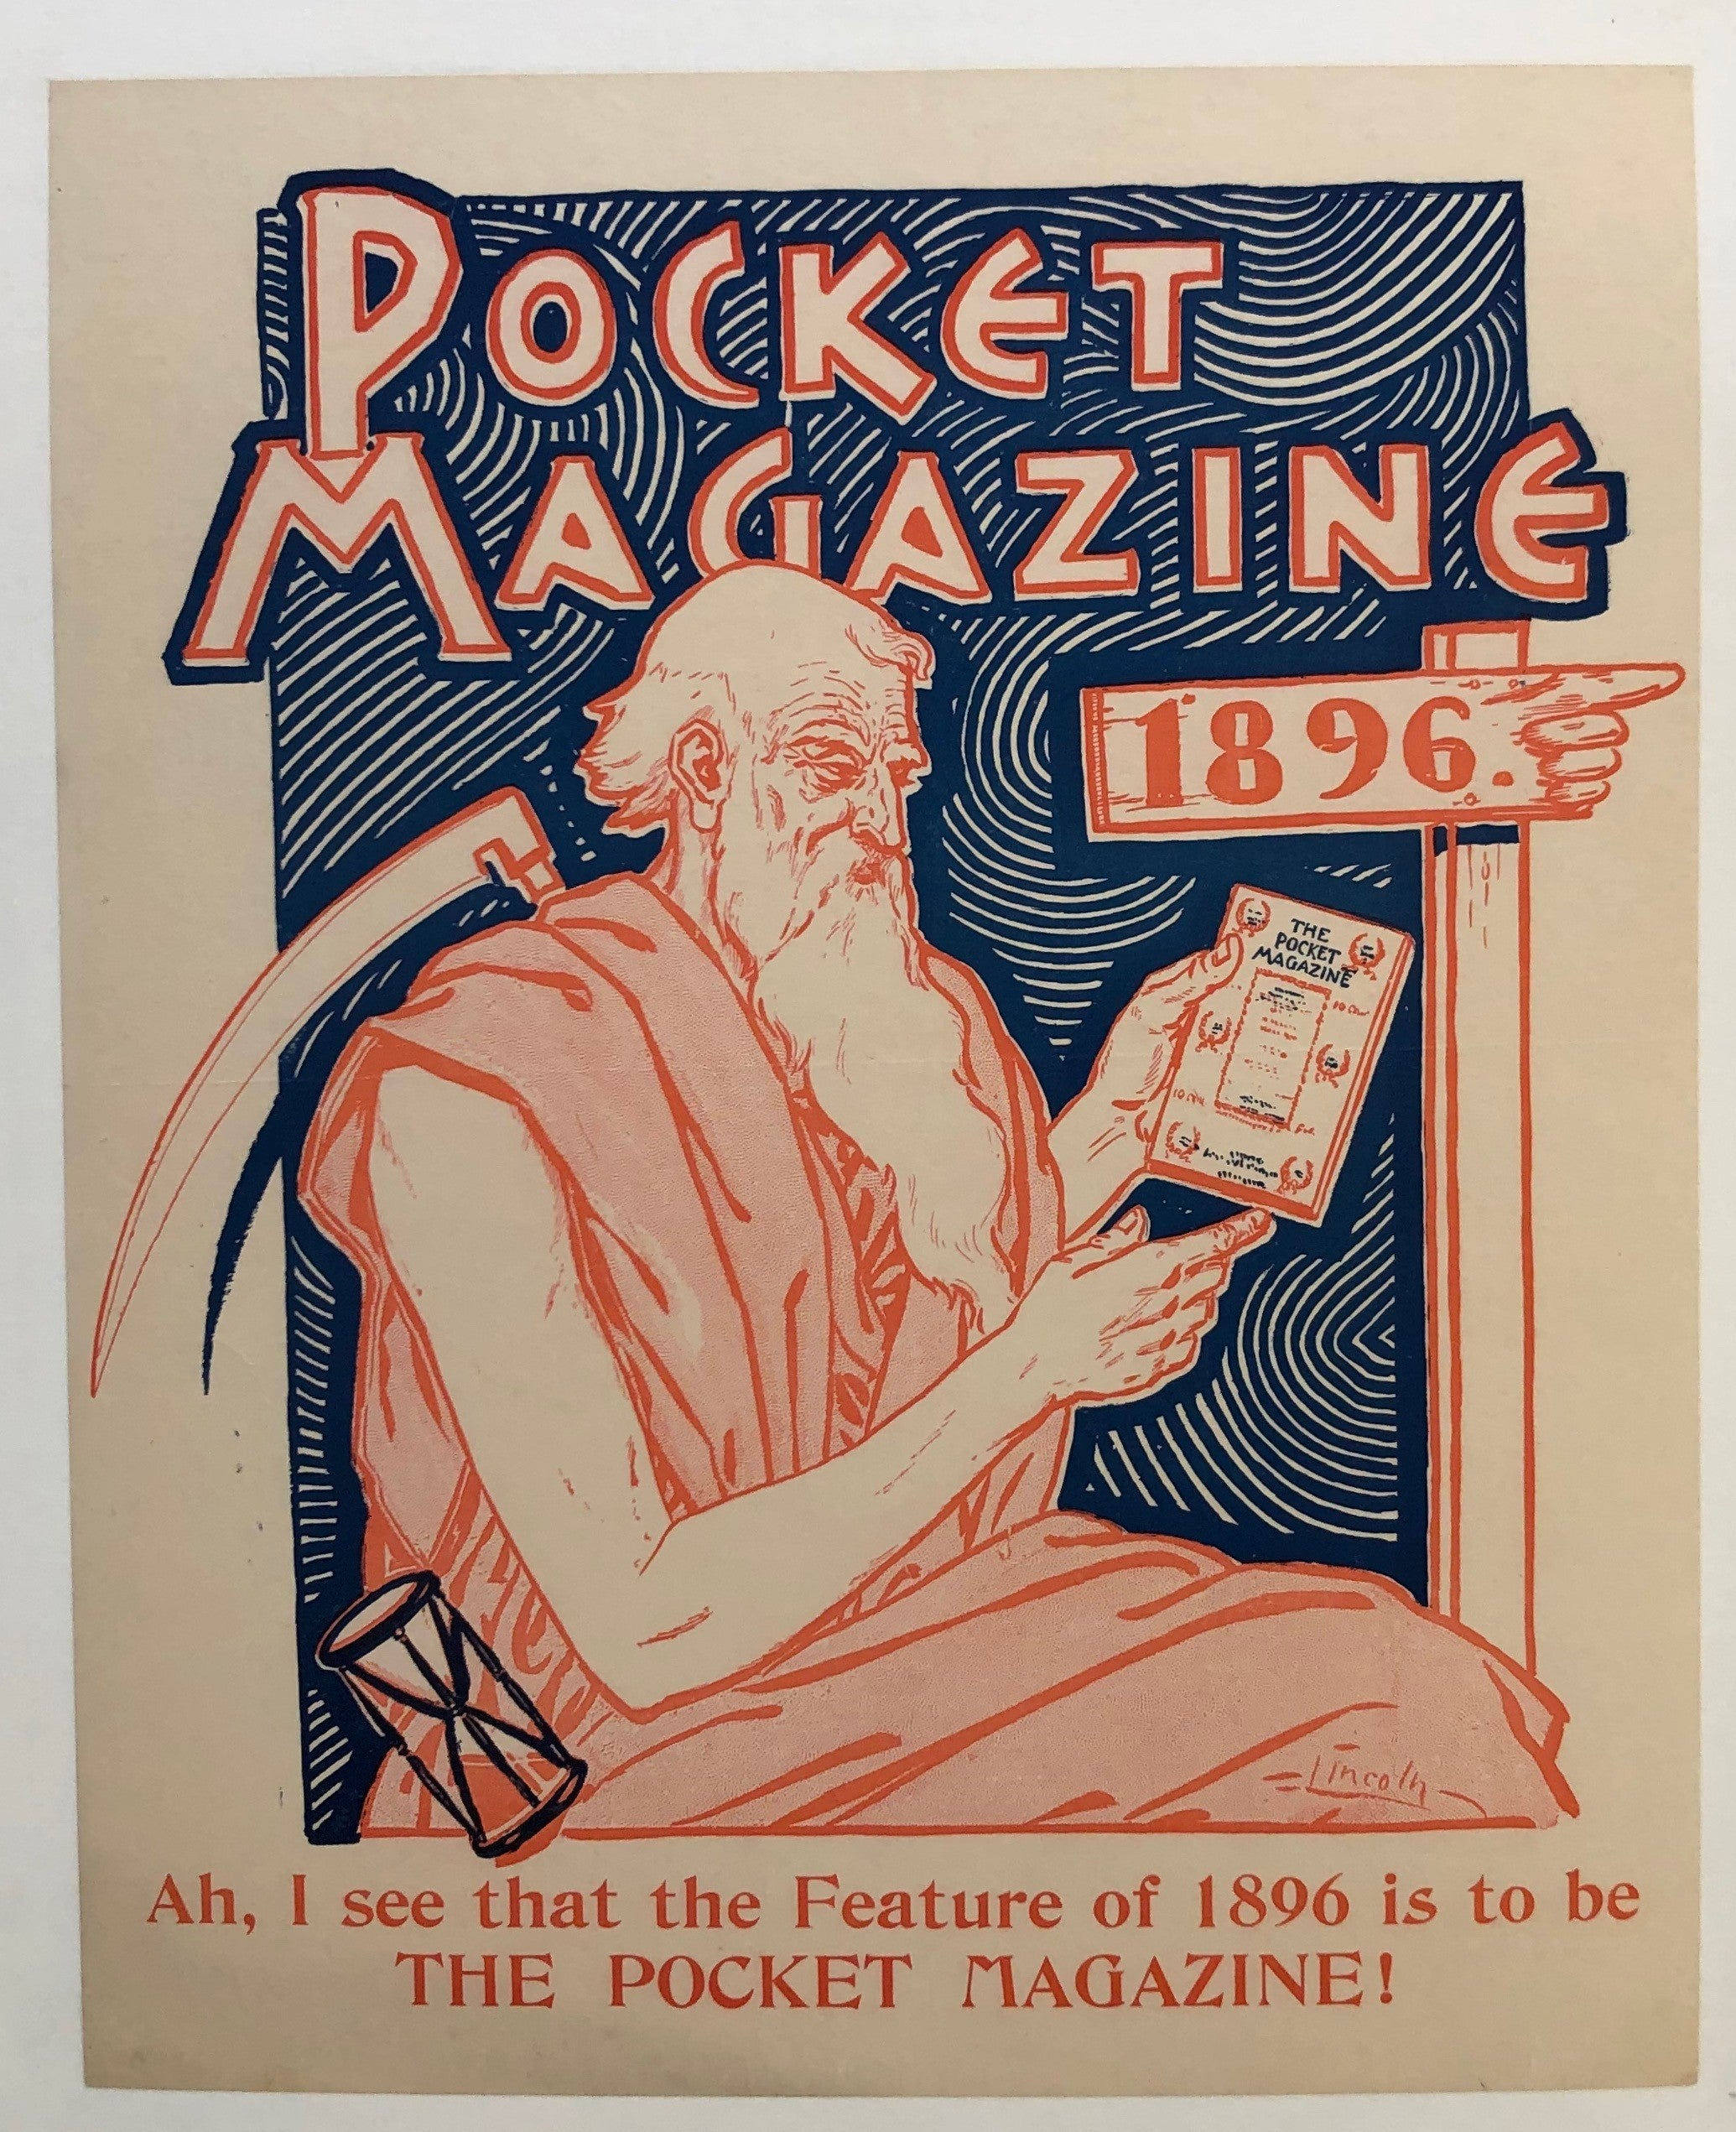 Pocket Magazine 1896